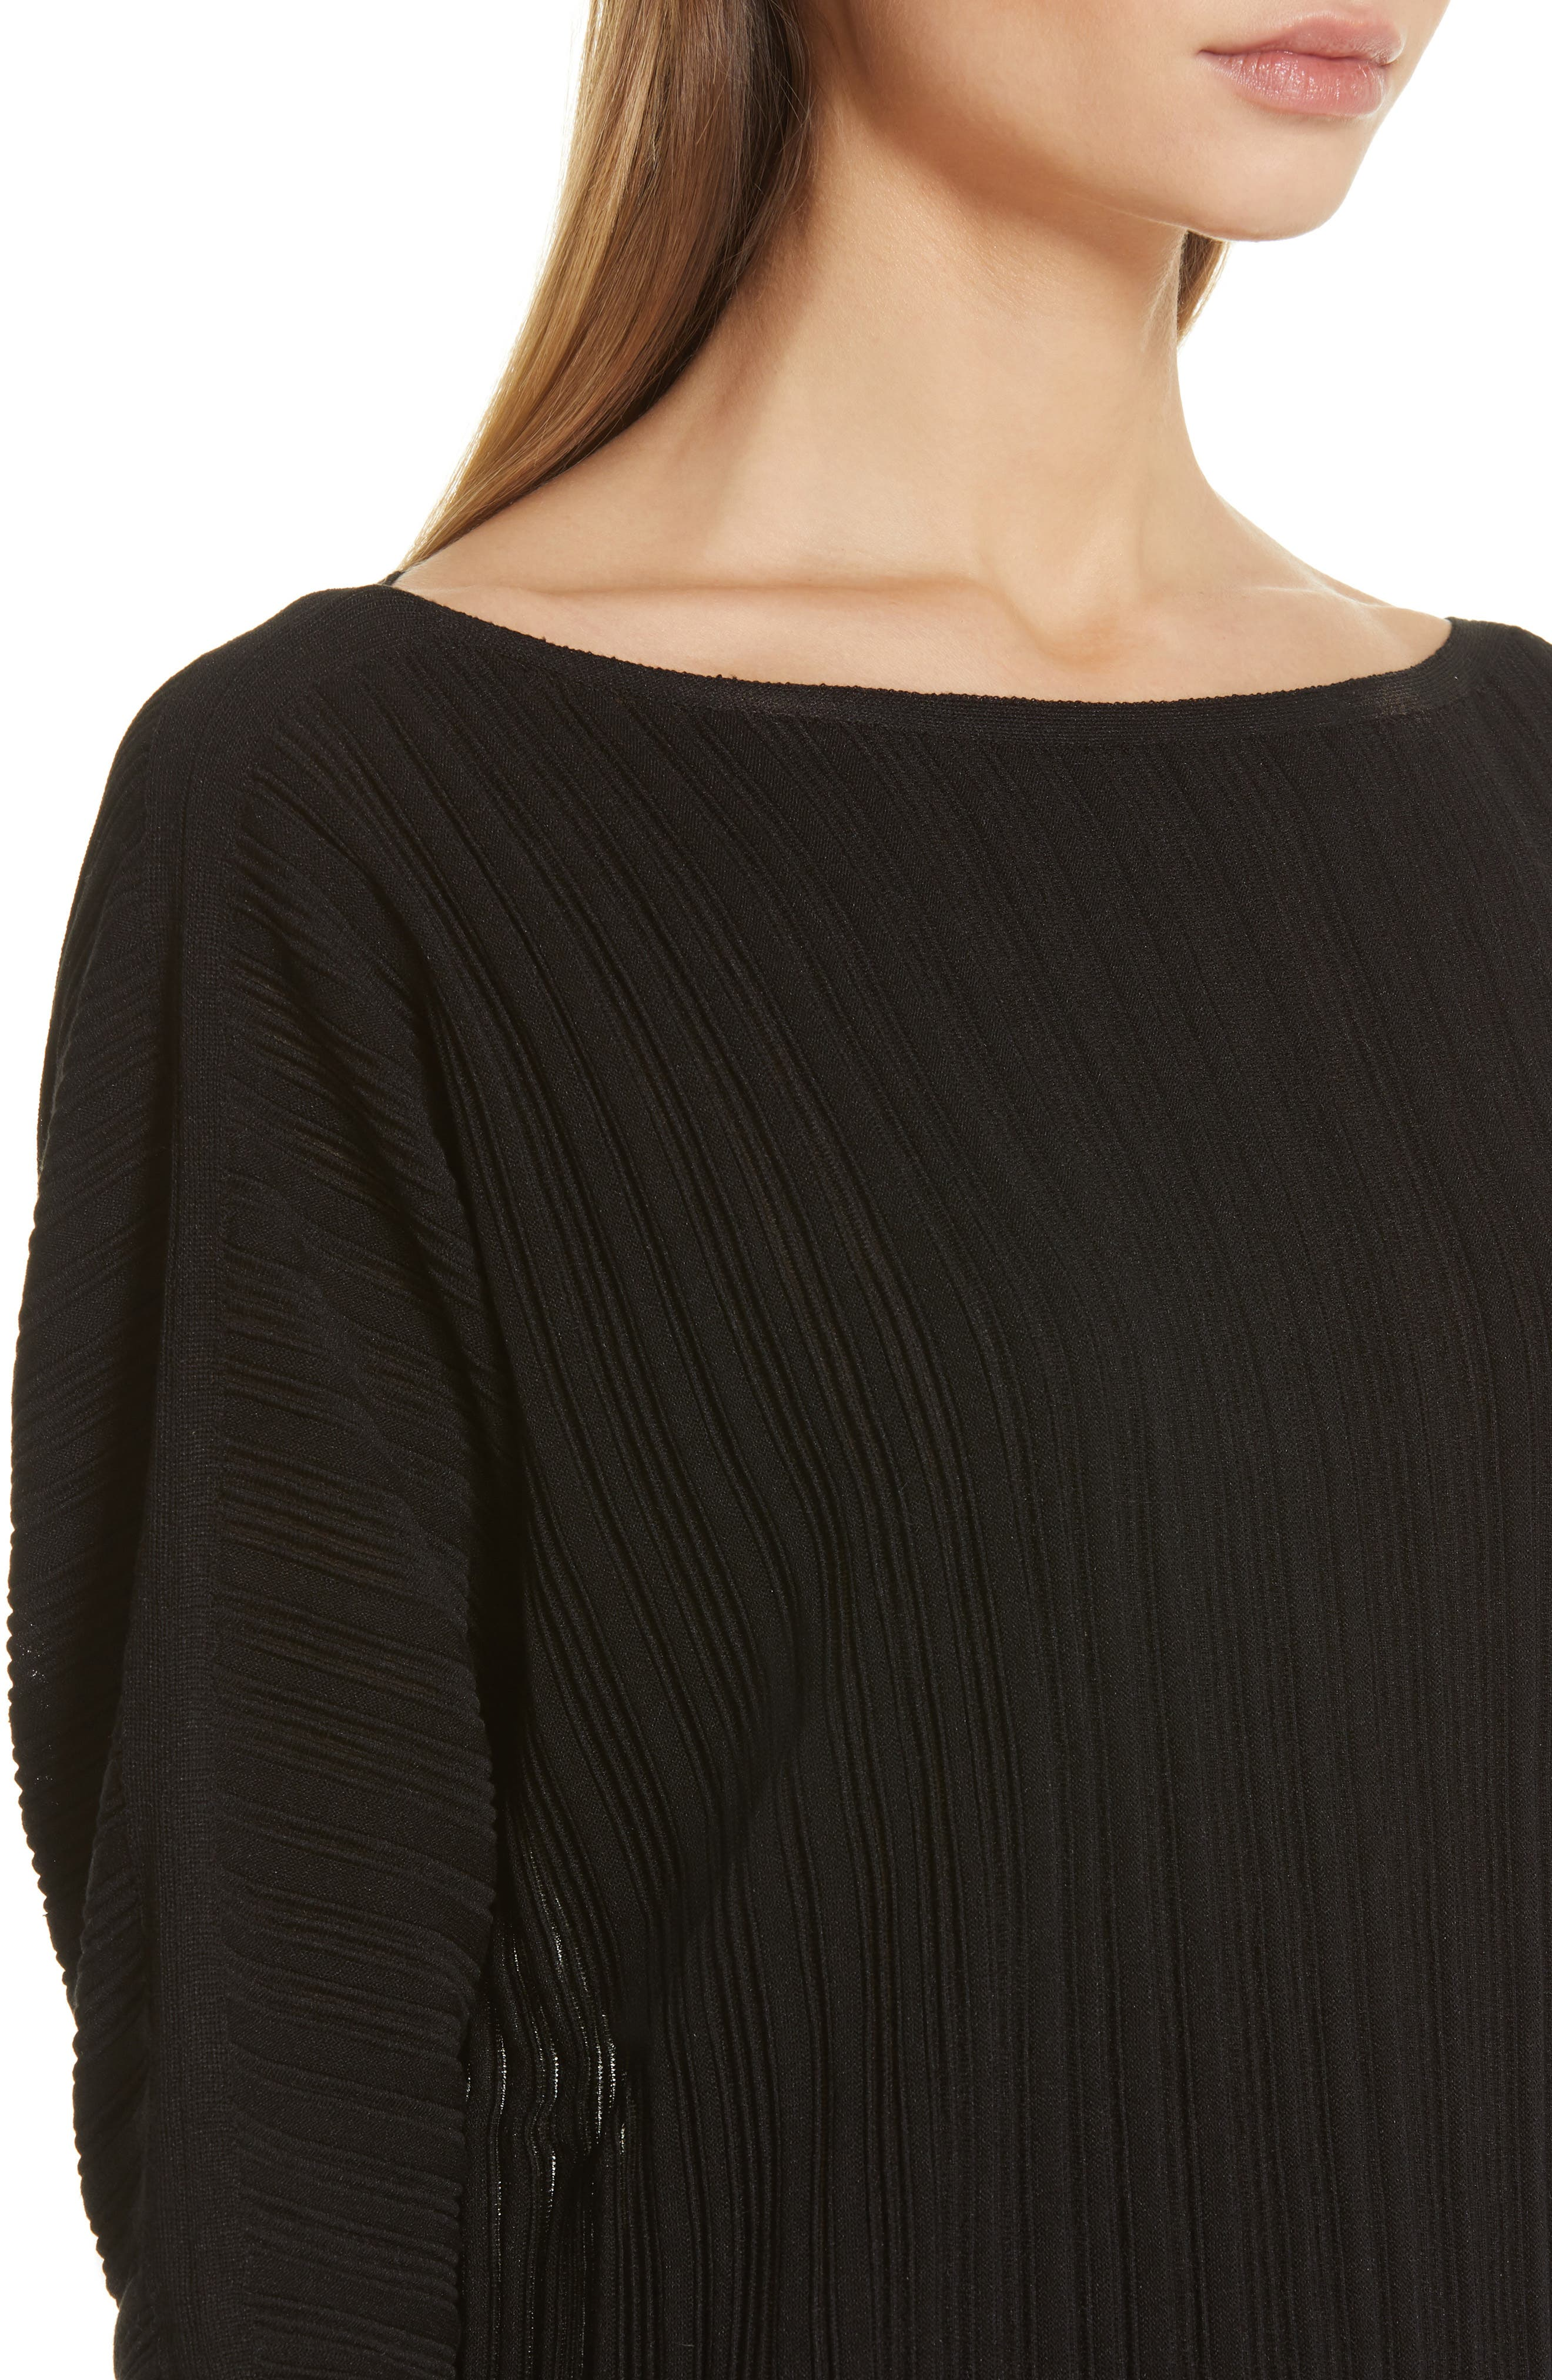 LAFAYETTE 148 NEW YORK, Plissé Ribbed Dolman Sweater, Alternate thumbnail 4, color, BLACK